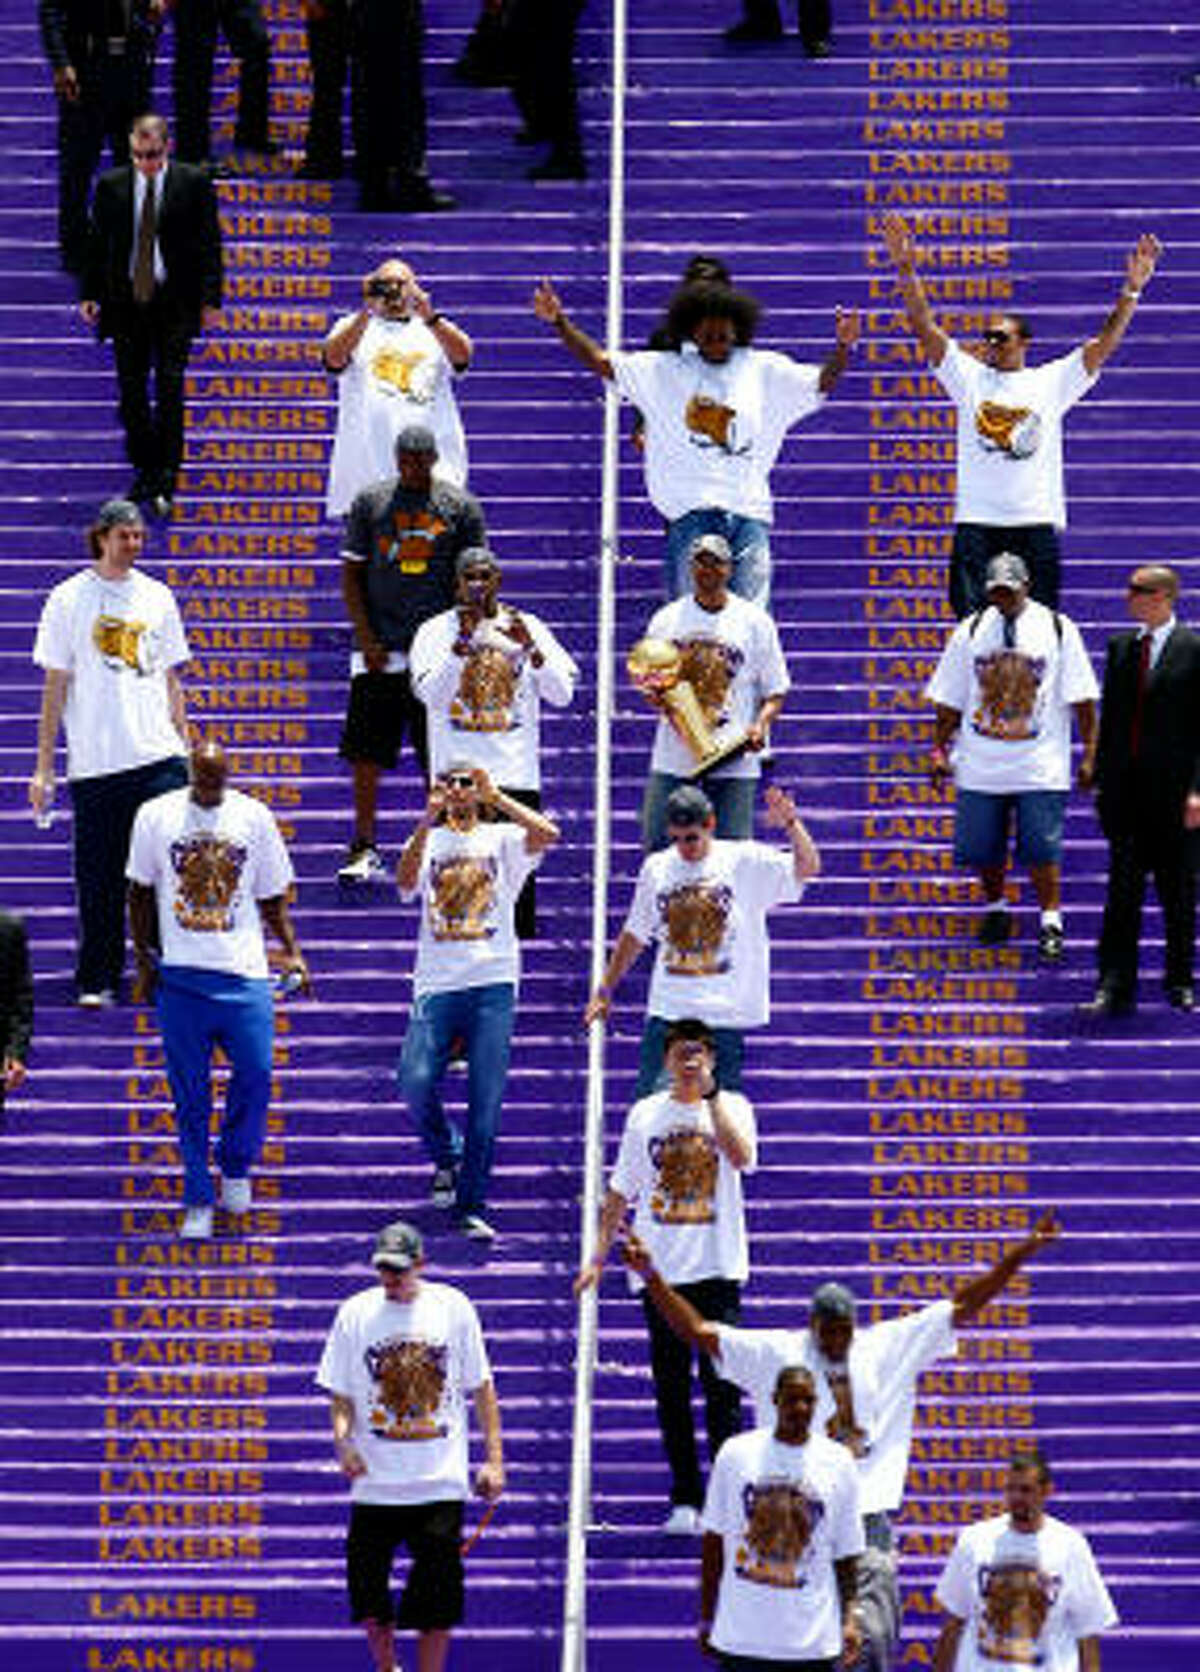 Members of the Los Angeles Lakers walk down the steps during the 2009 NBA Championship Victory Parade at the Los Angeles Memorial Coliseum